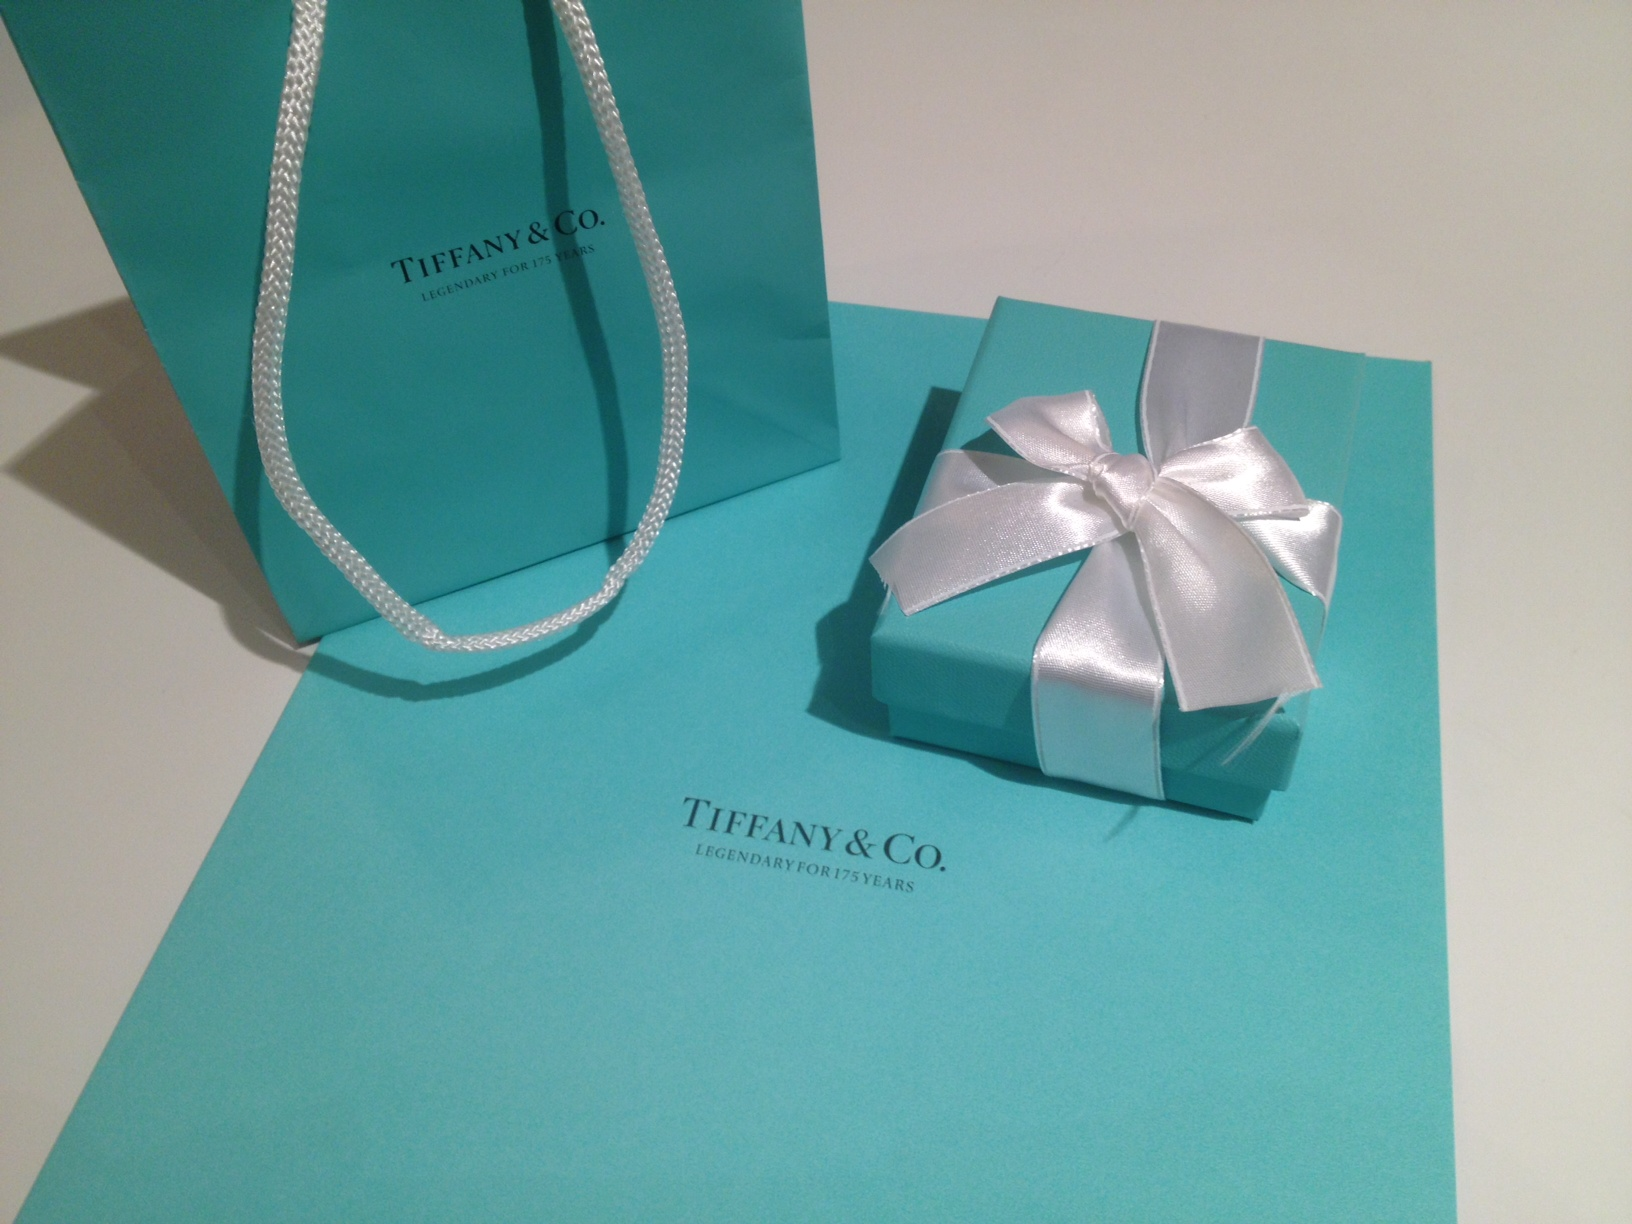 World exclusive first look at tiffany co ziegfeld for Where is tiffany and co located